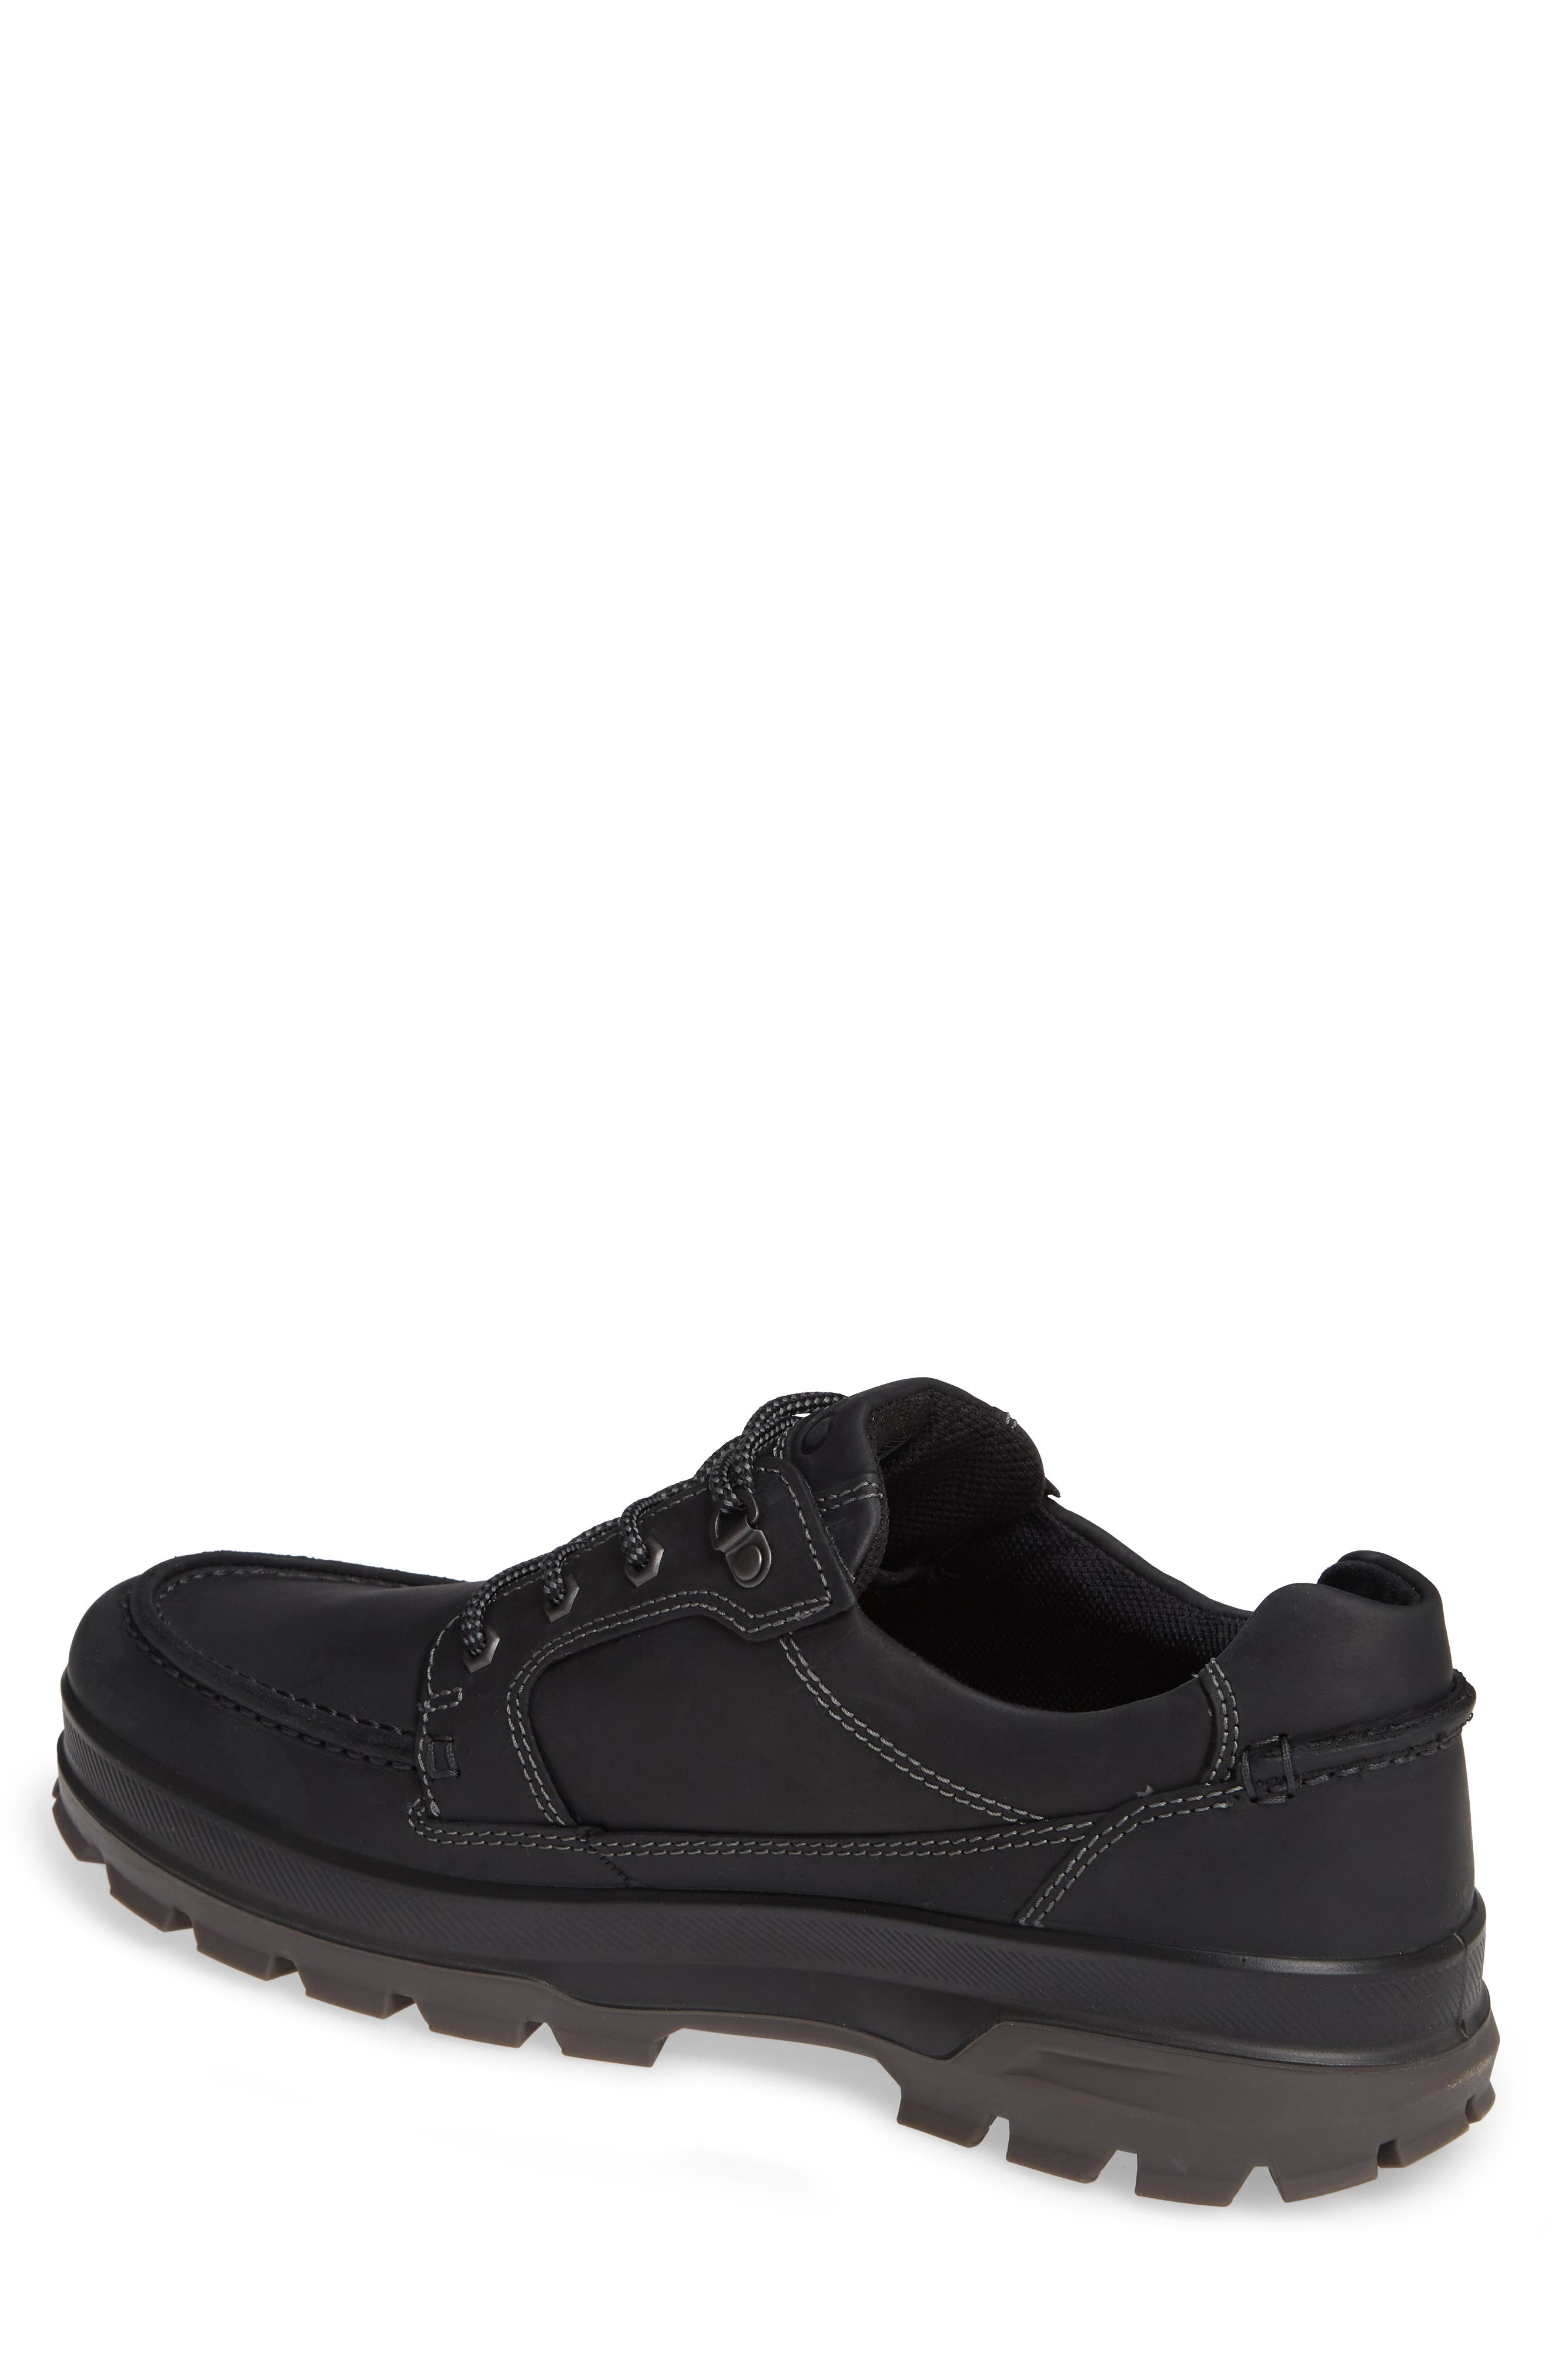 Rugged Track Low Gore-Tex<sup>®</sup> Oxford,                             Alternate thumbnail 2, color,                             BLACK LEATHER